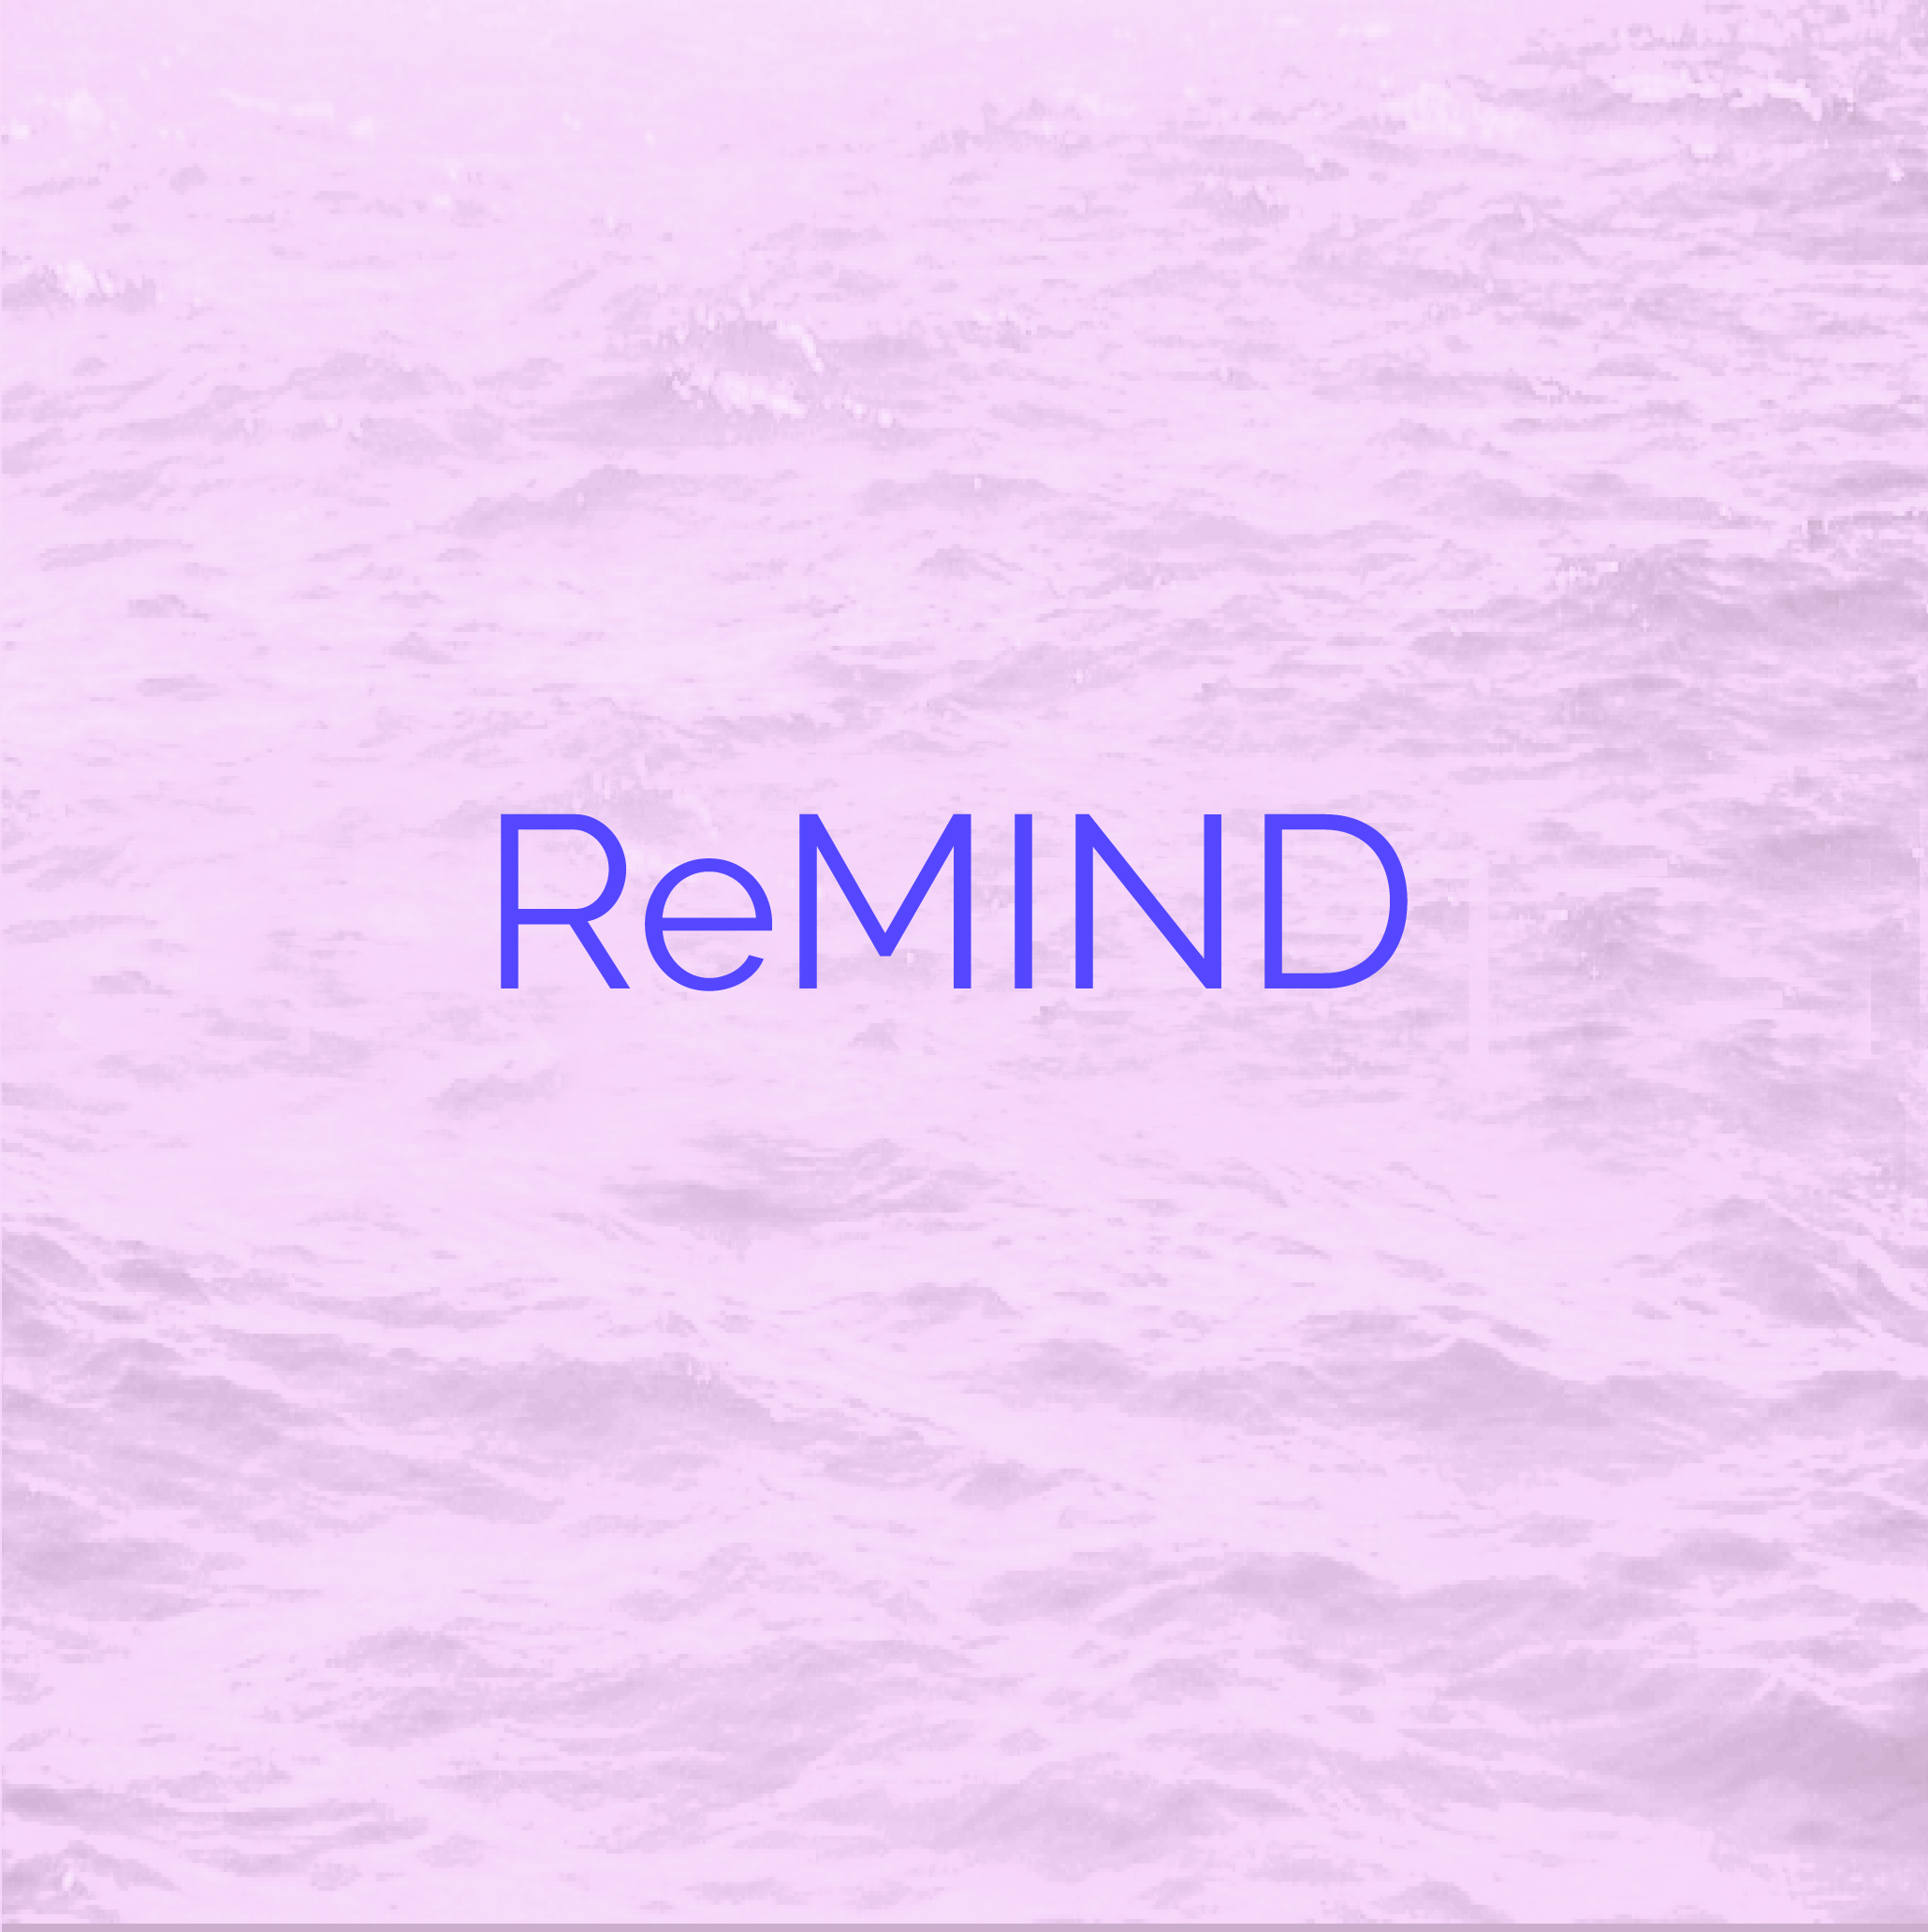 An icon representing ReMIND